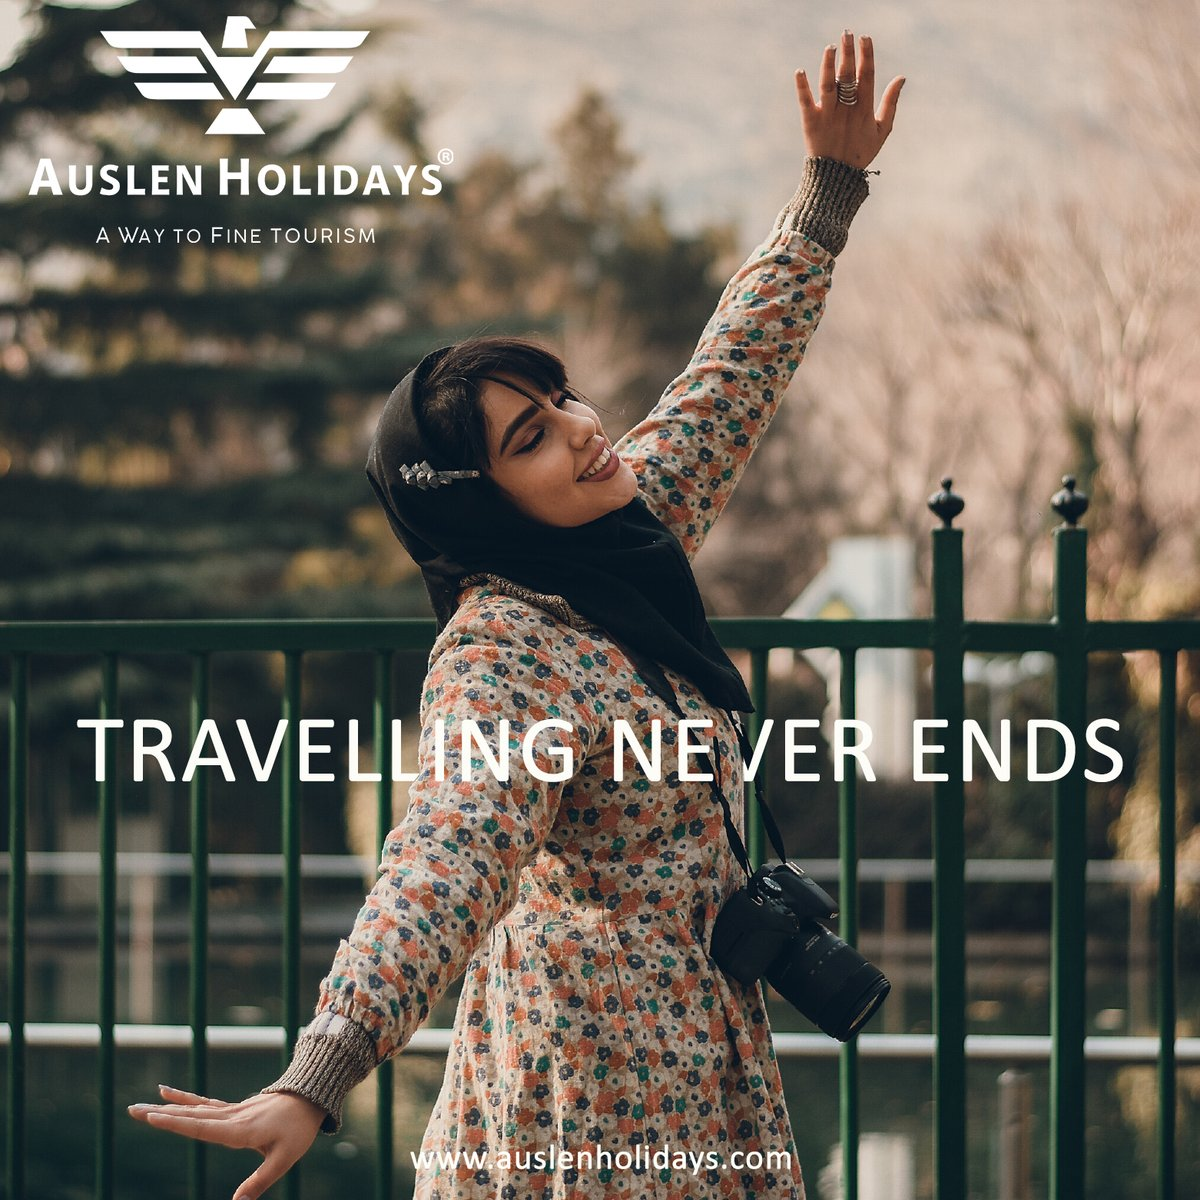 Travelling never #ends  #travel #travelgram #travelphotography #travelholic #travelguide #travelling #traveling #traveler #traveltheworld #instatravel #travelblogger #auslenholidays #instagood #fashion #followme #tbt #munnar #godowncountry #keralatourism #tigerroar #lulumallpic.twitter.com/kPweVKIDvR